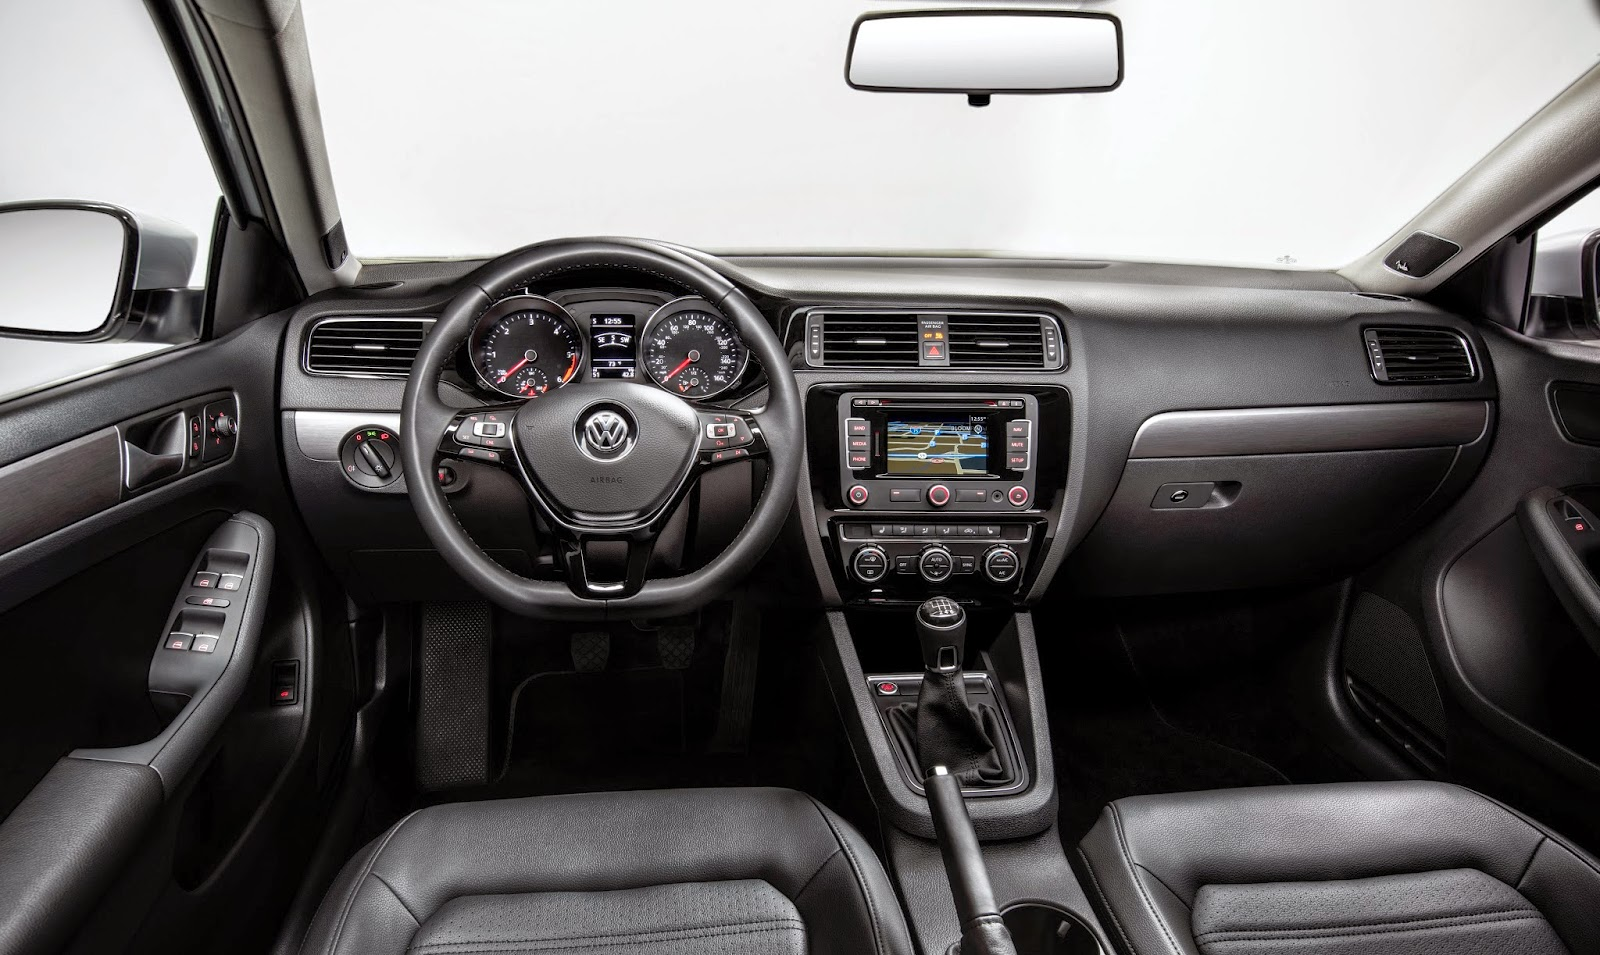 Interior view of 2015 Volkswagen Jetta 1.8T (manual transmission shown)